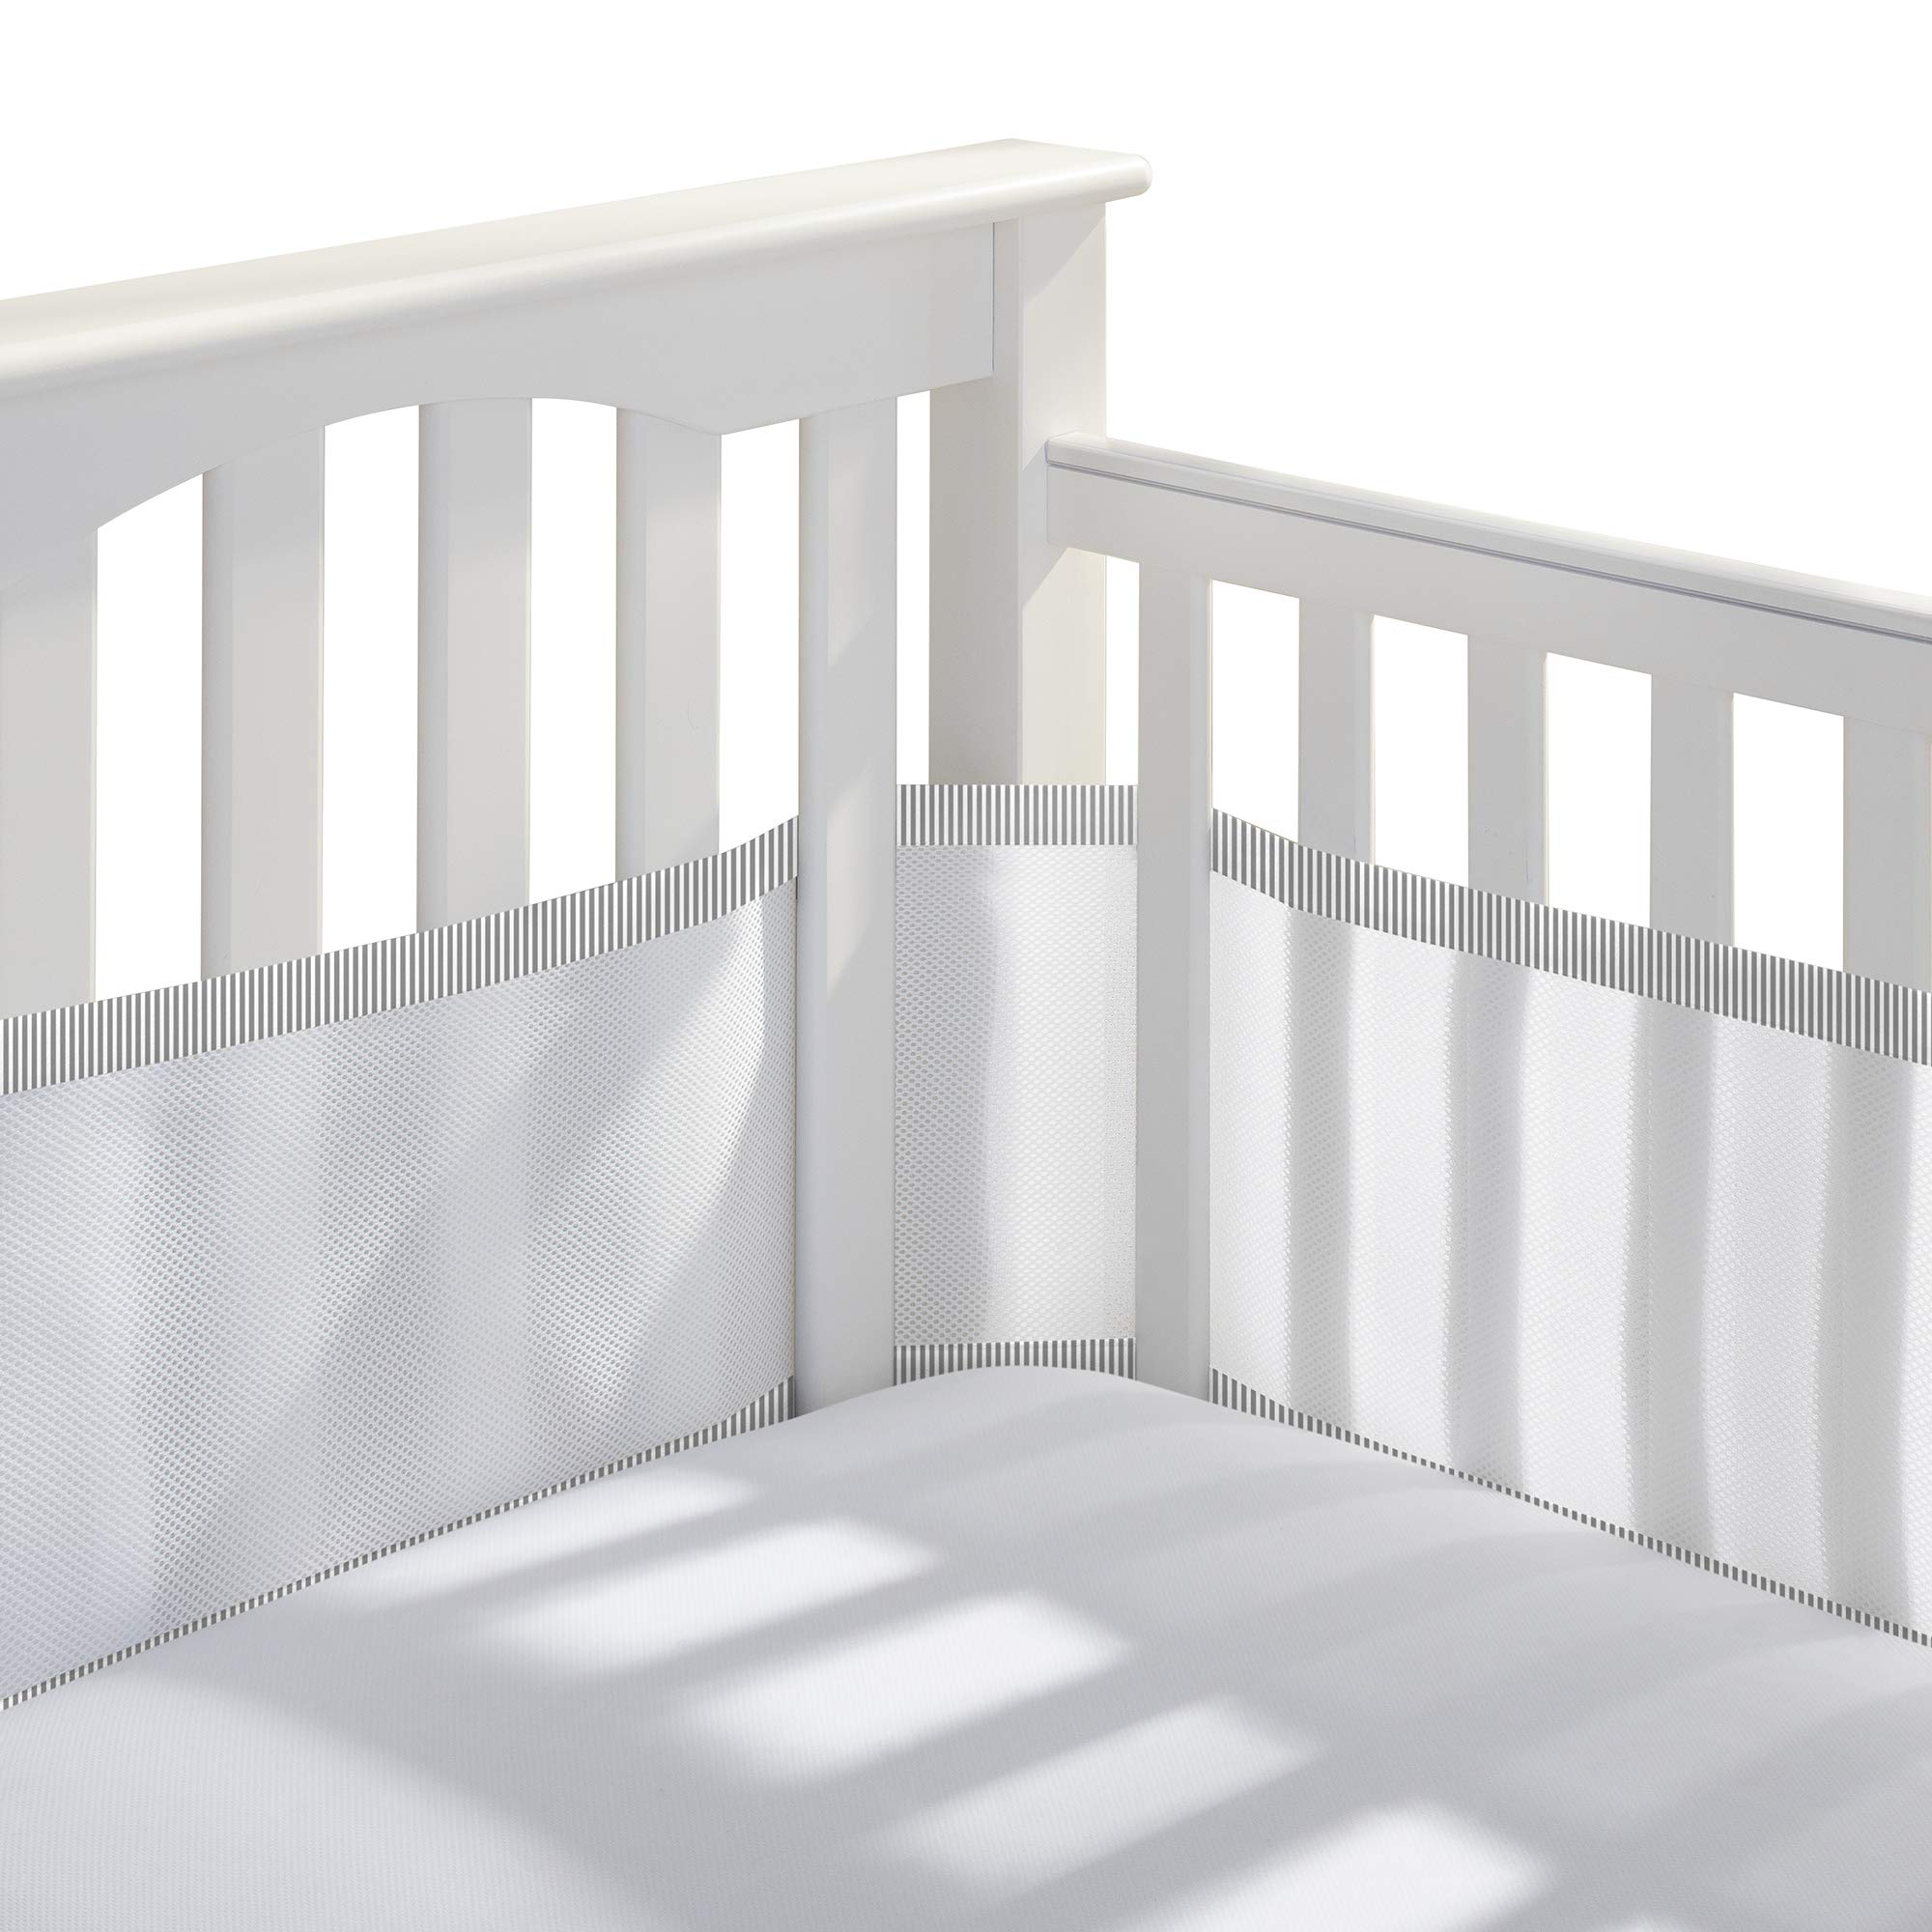 BreathableBaby Classic Breathable Mesh Crib Liner - White and Gray Seersucker Trim by BreathableBaby